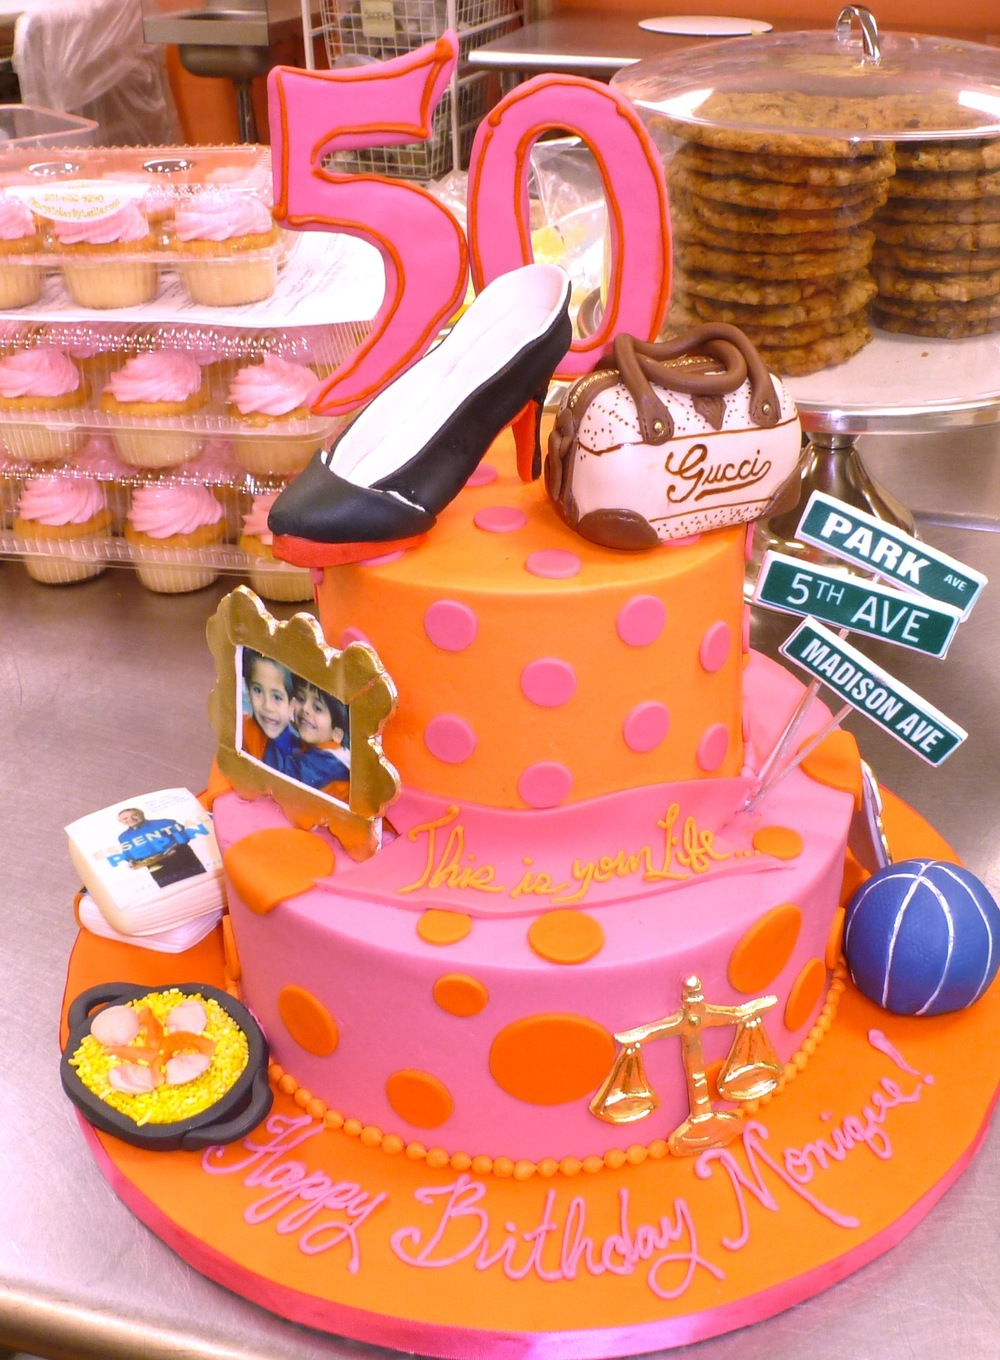 It's your life cake